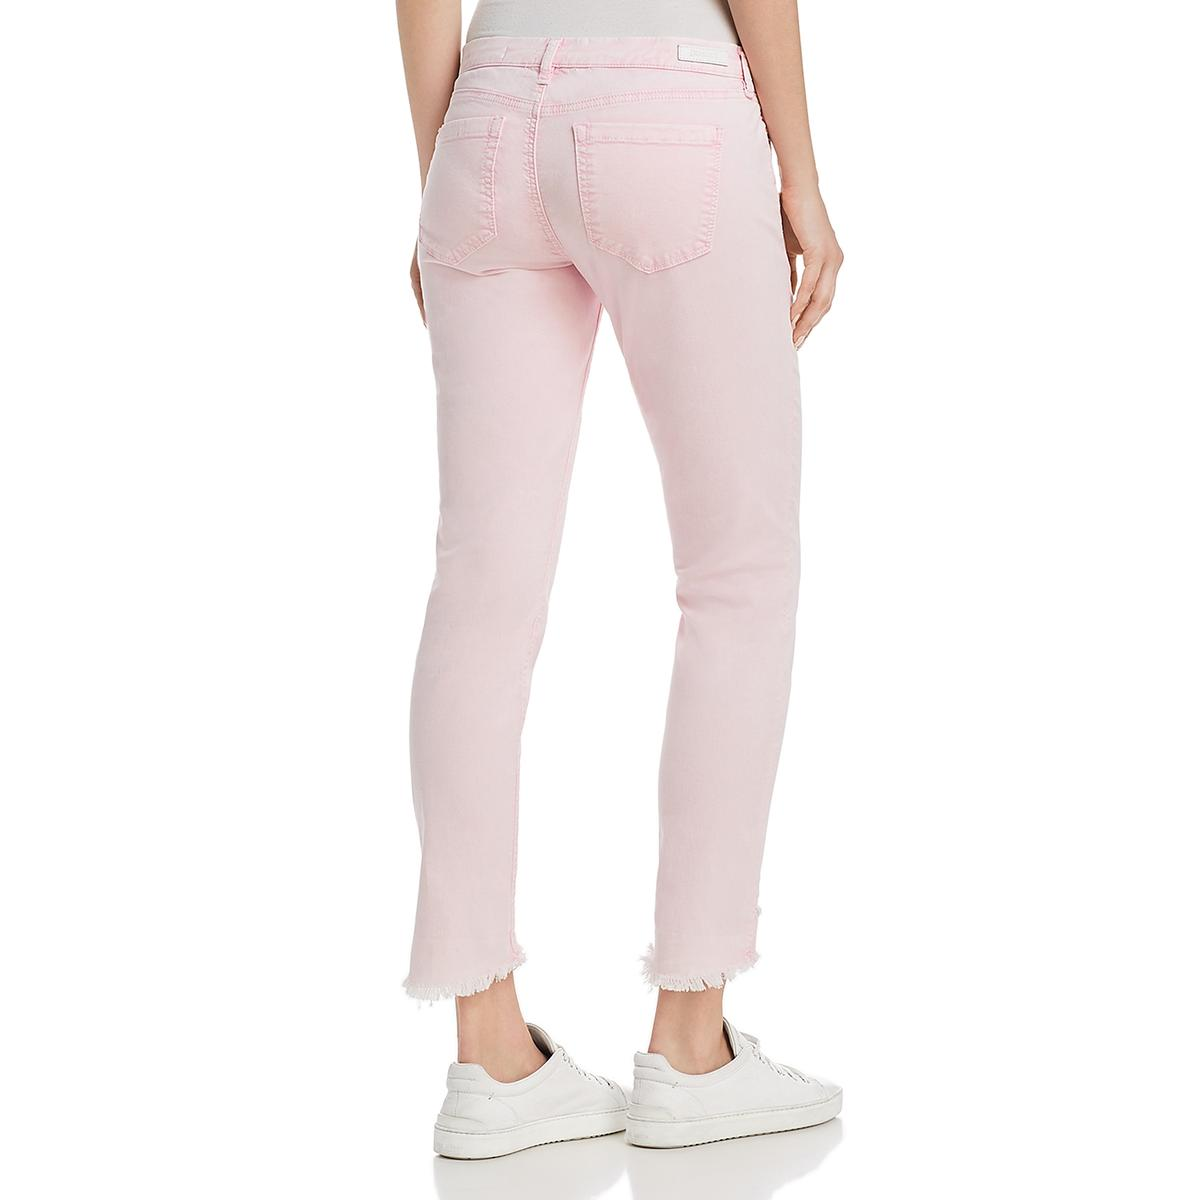 Blank NYC Womens Reade Frayed Hem Cropped Colored Skinny Jeans BHFO 9012